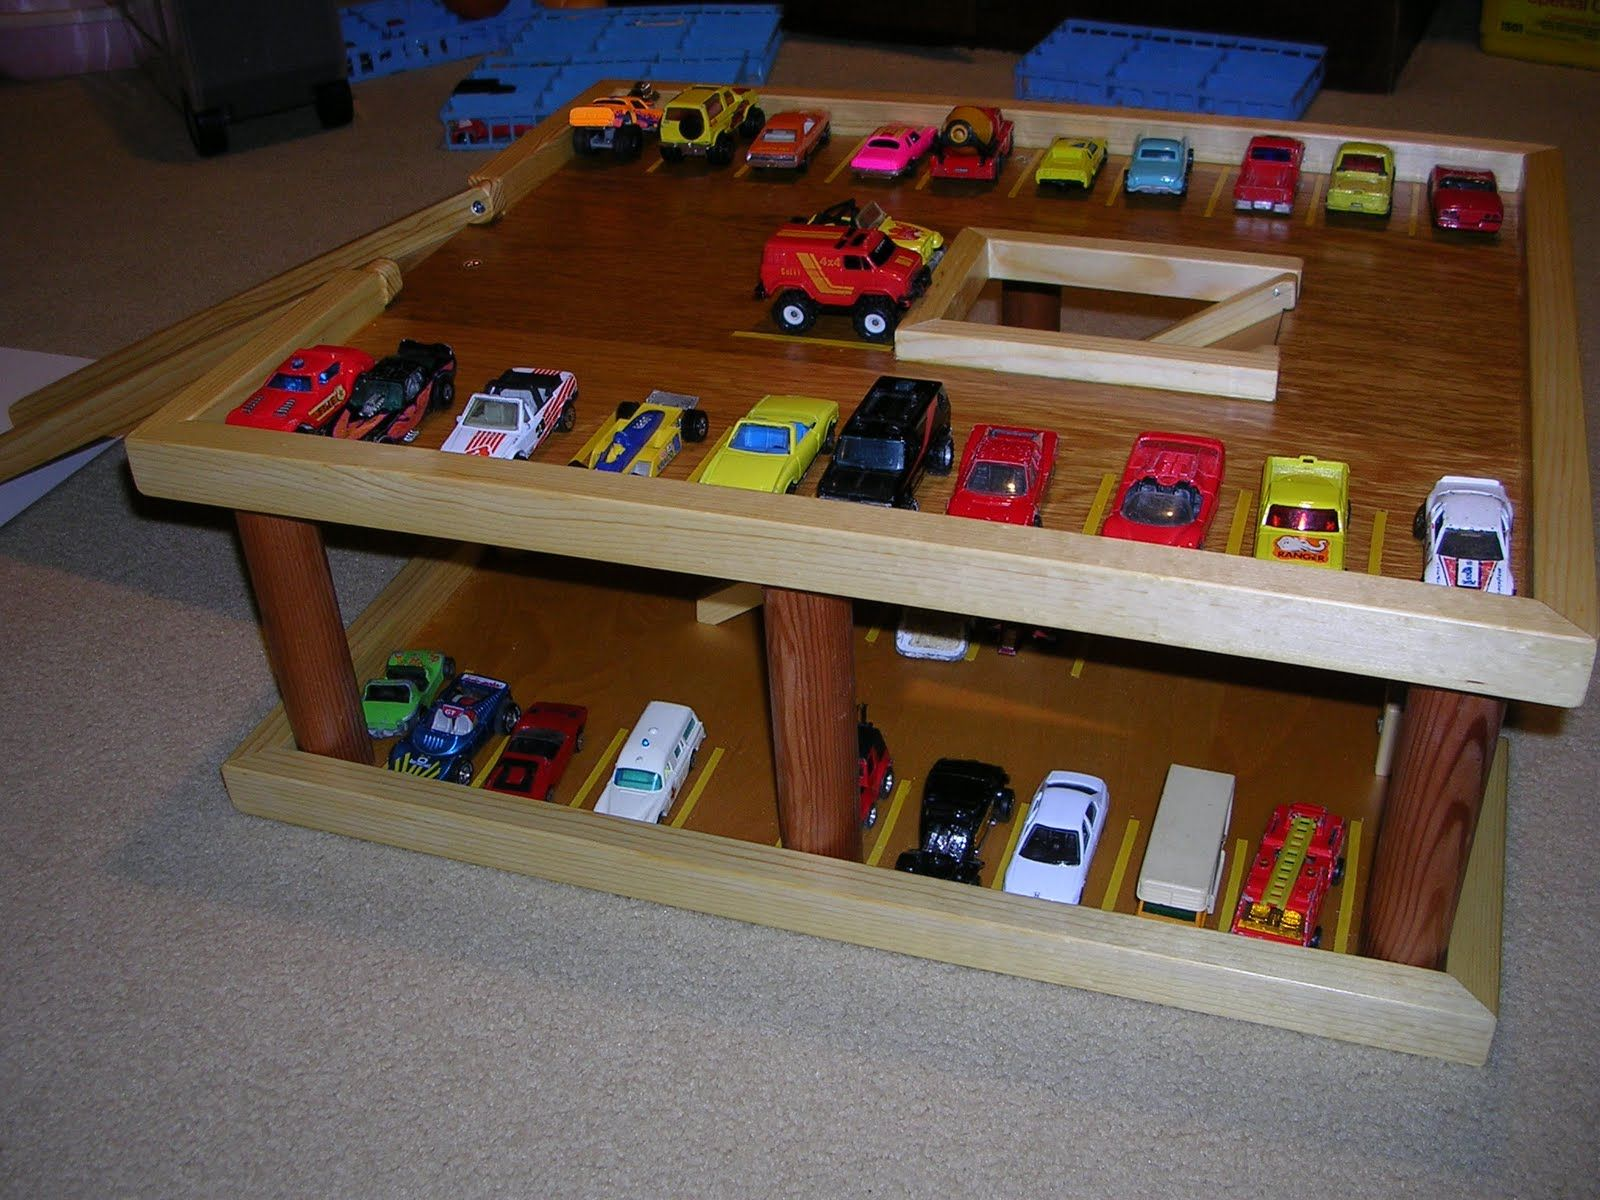 Hot Weels Garage : Hotwheels garage can t wait till i get the stuff to make this for